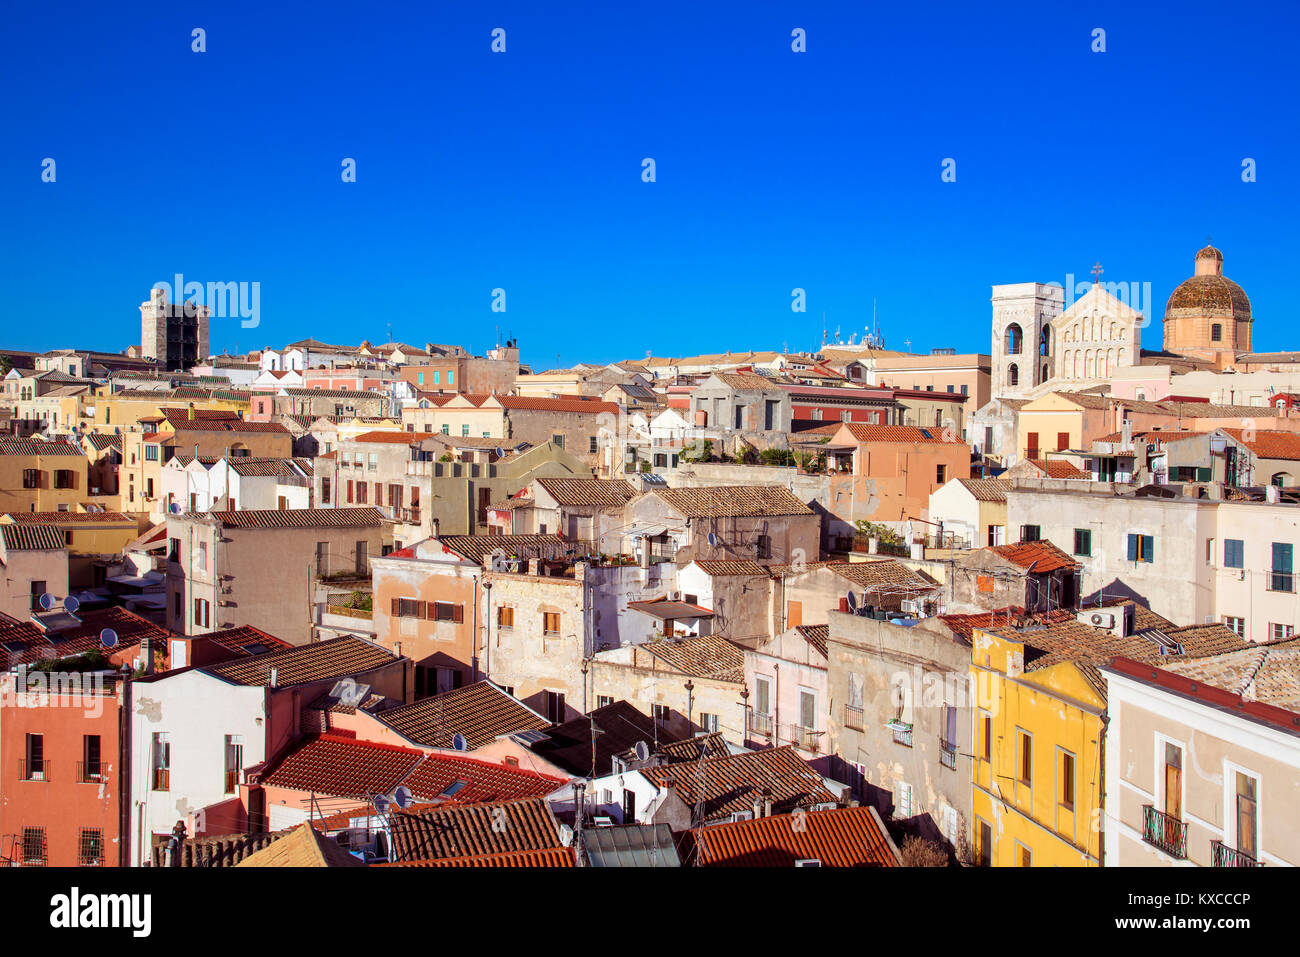 an aerial view of the old town of Cagliari, in Sardinia, Italy, highlighting the bell tower and the top of the facade - Stock Image